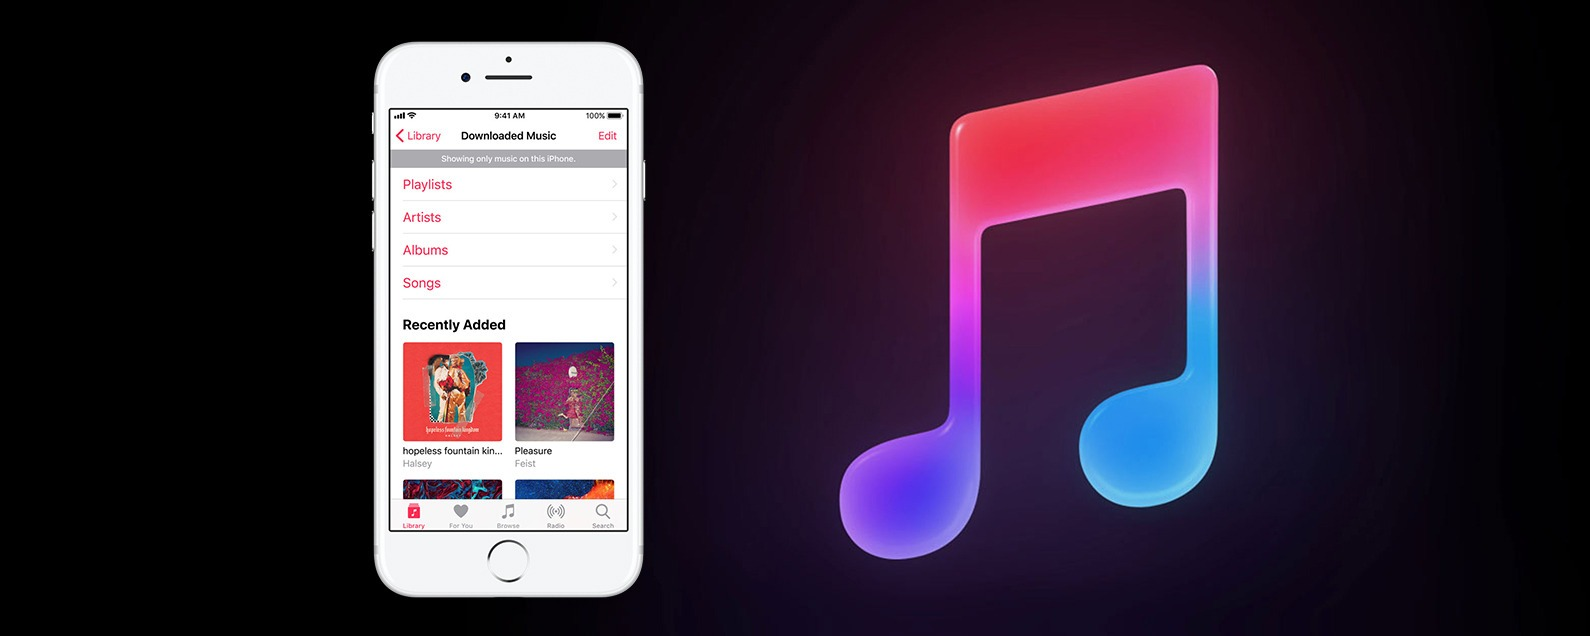 whats a good music app for iphone iphone best apps top tips great gear iphonelife 3215